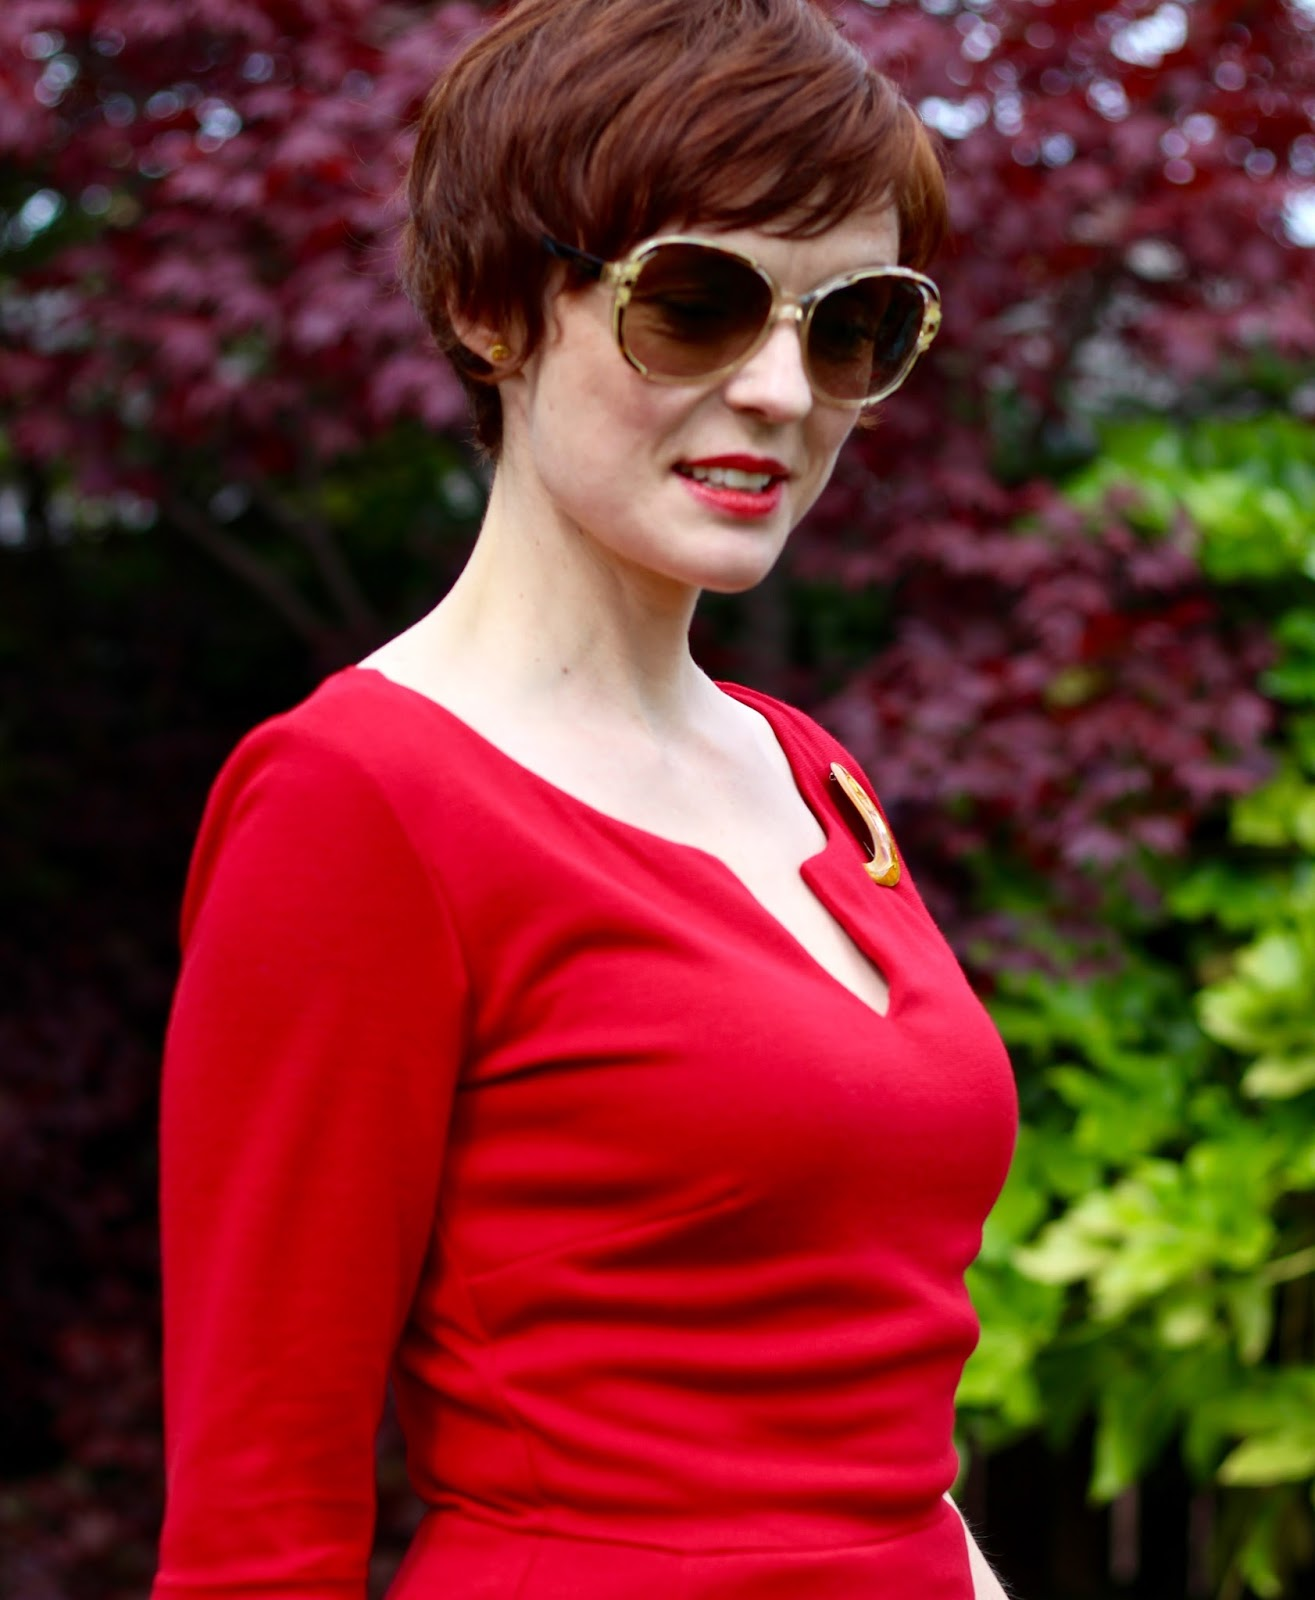 Red Alie Street Morgan Dress | 3 ways to add Individuality to a Formal Look.